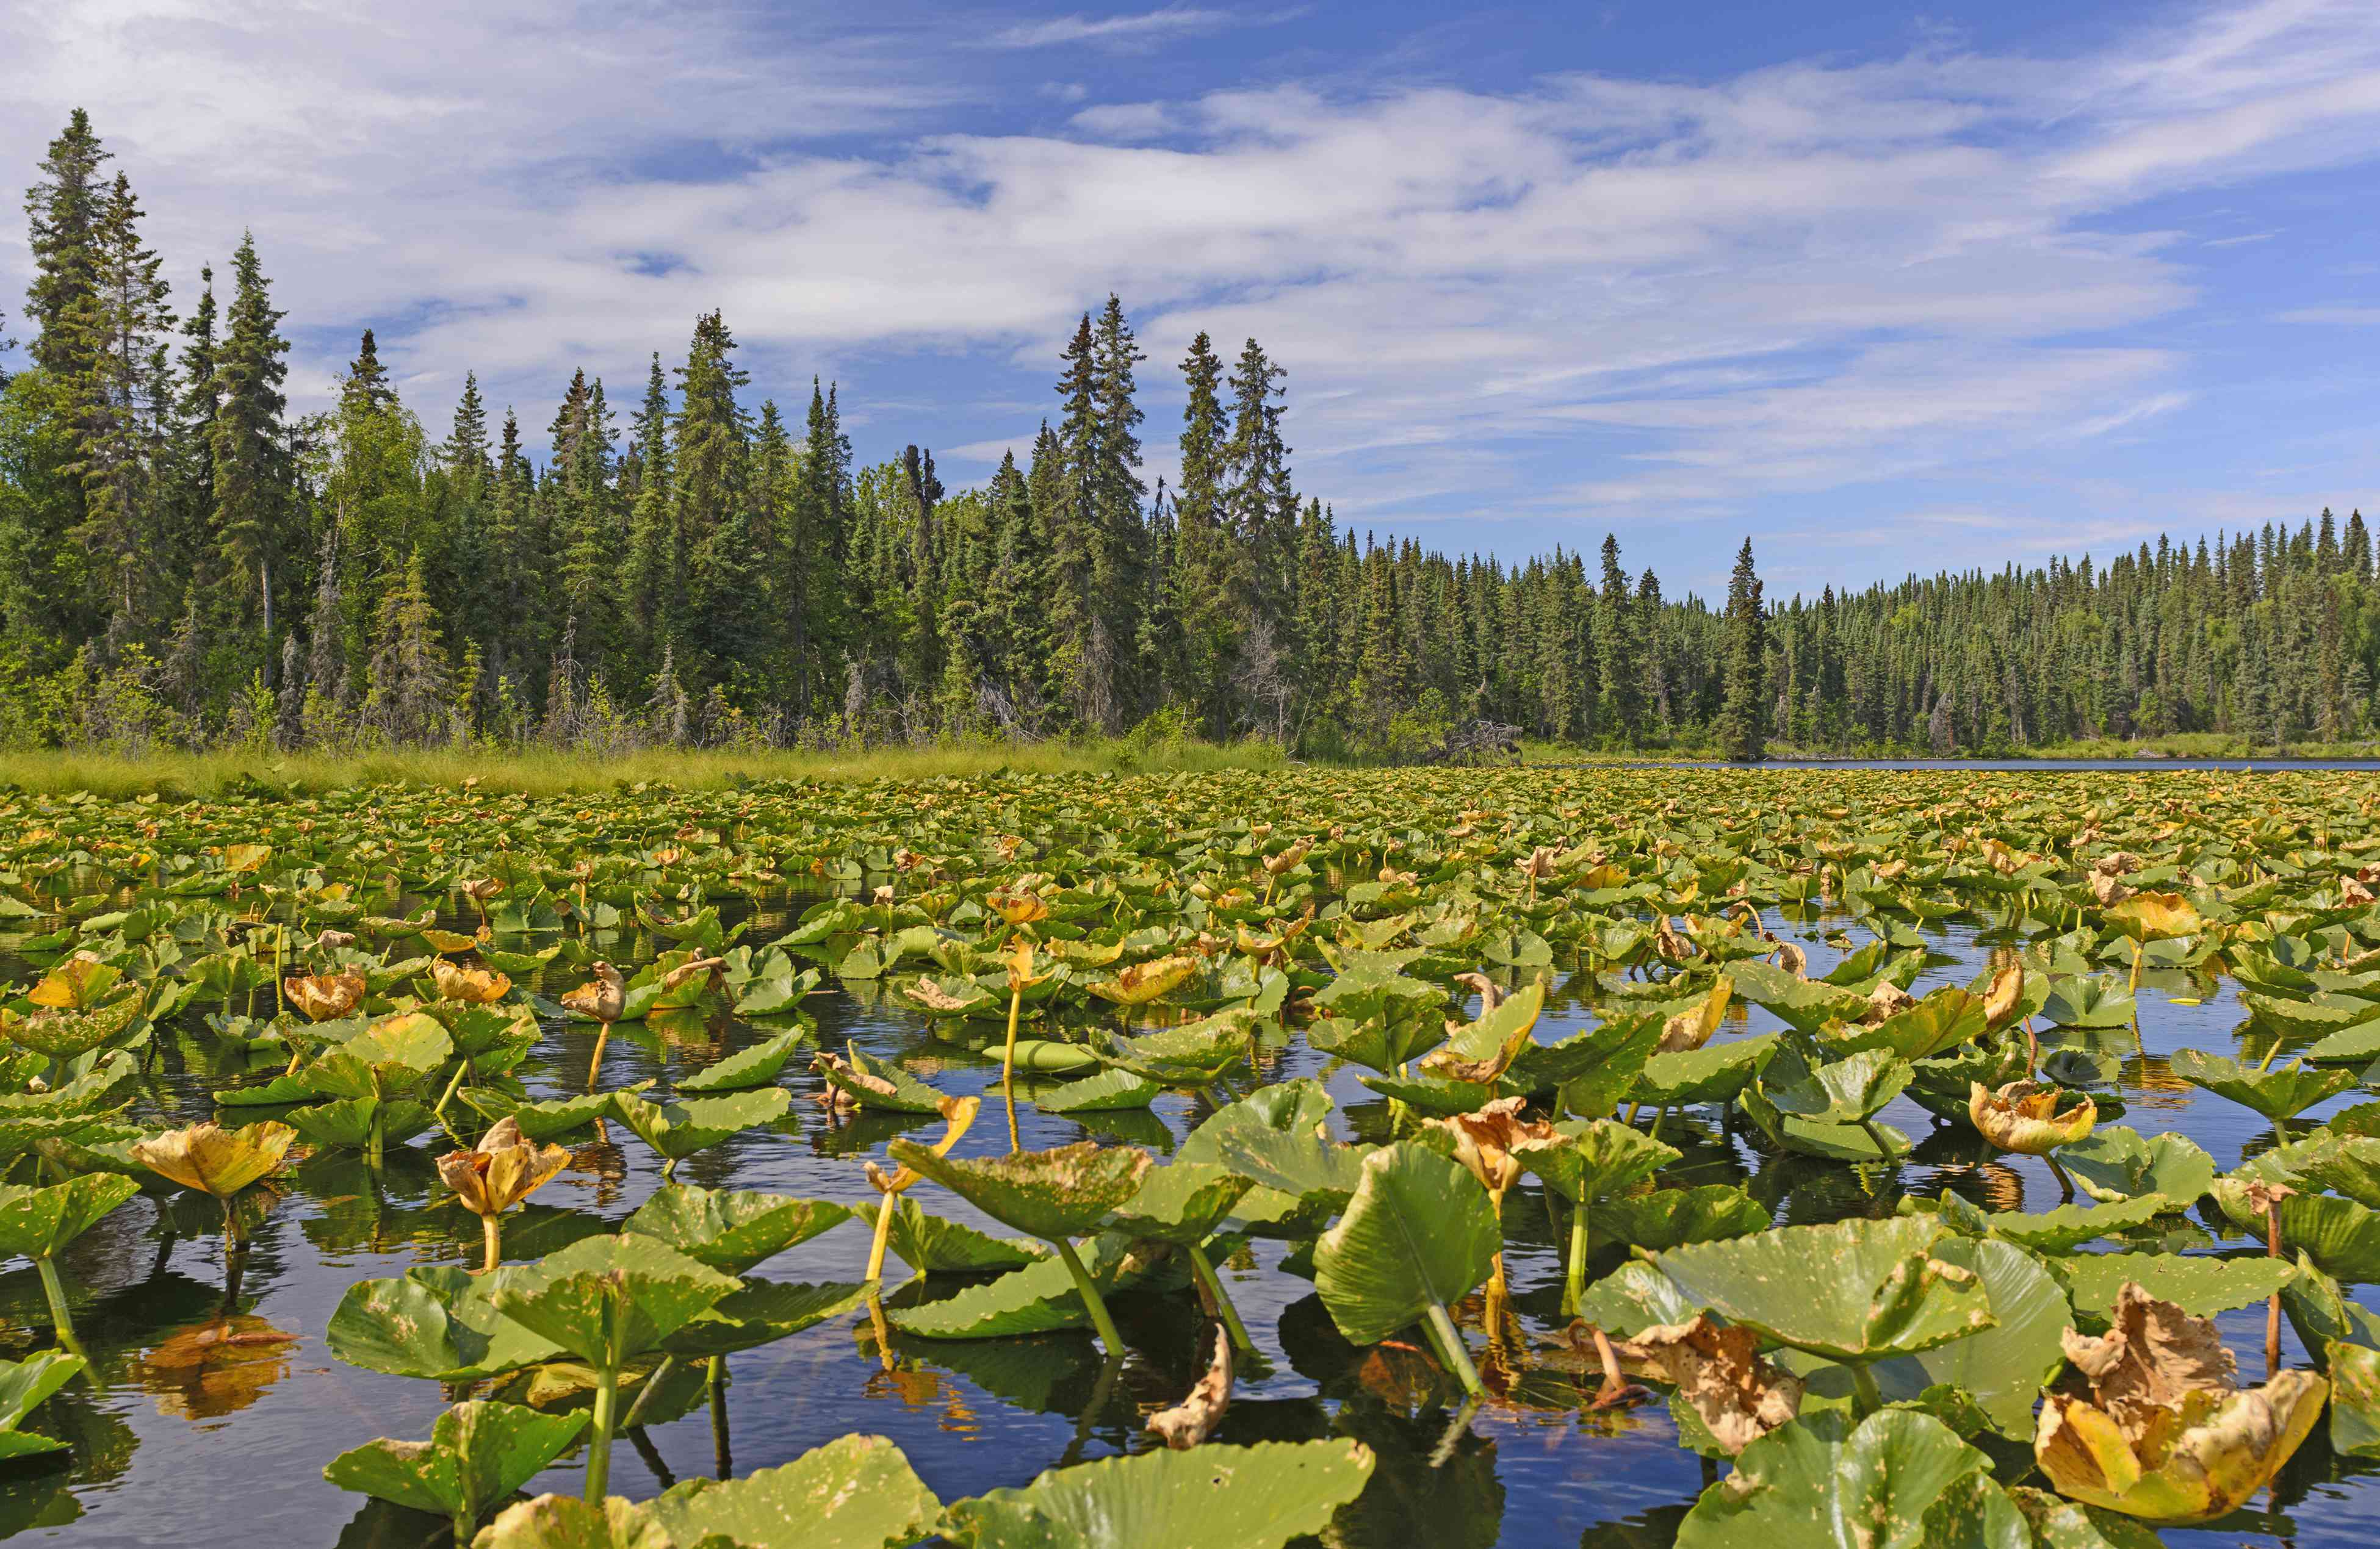 green water lilies on a lake with fir trees in the distance at Kenai Wildlife Refuge